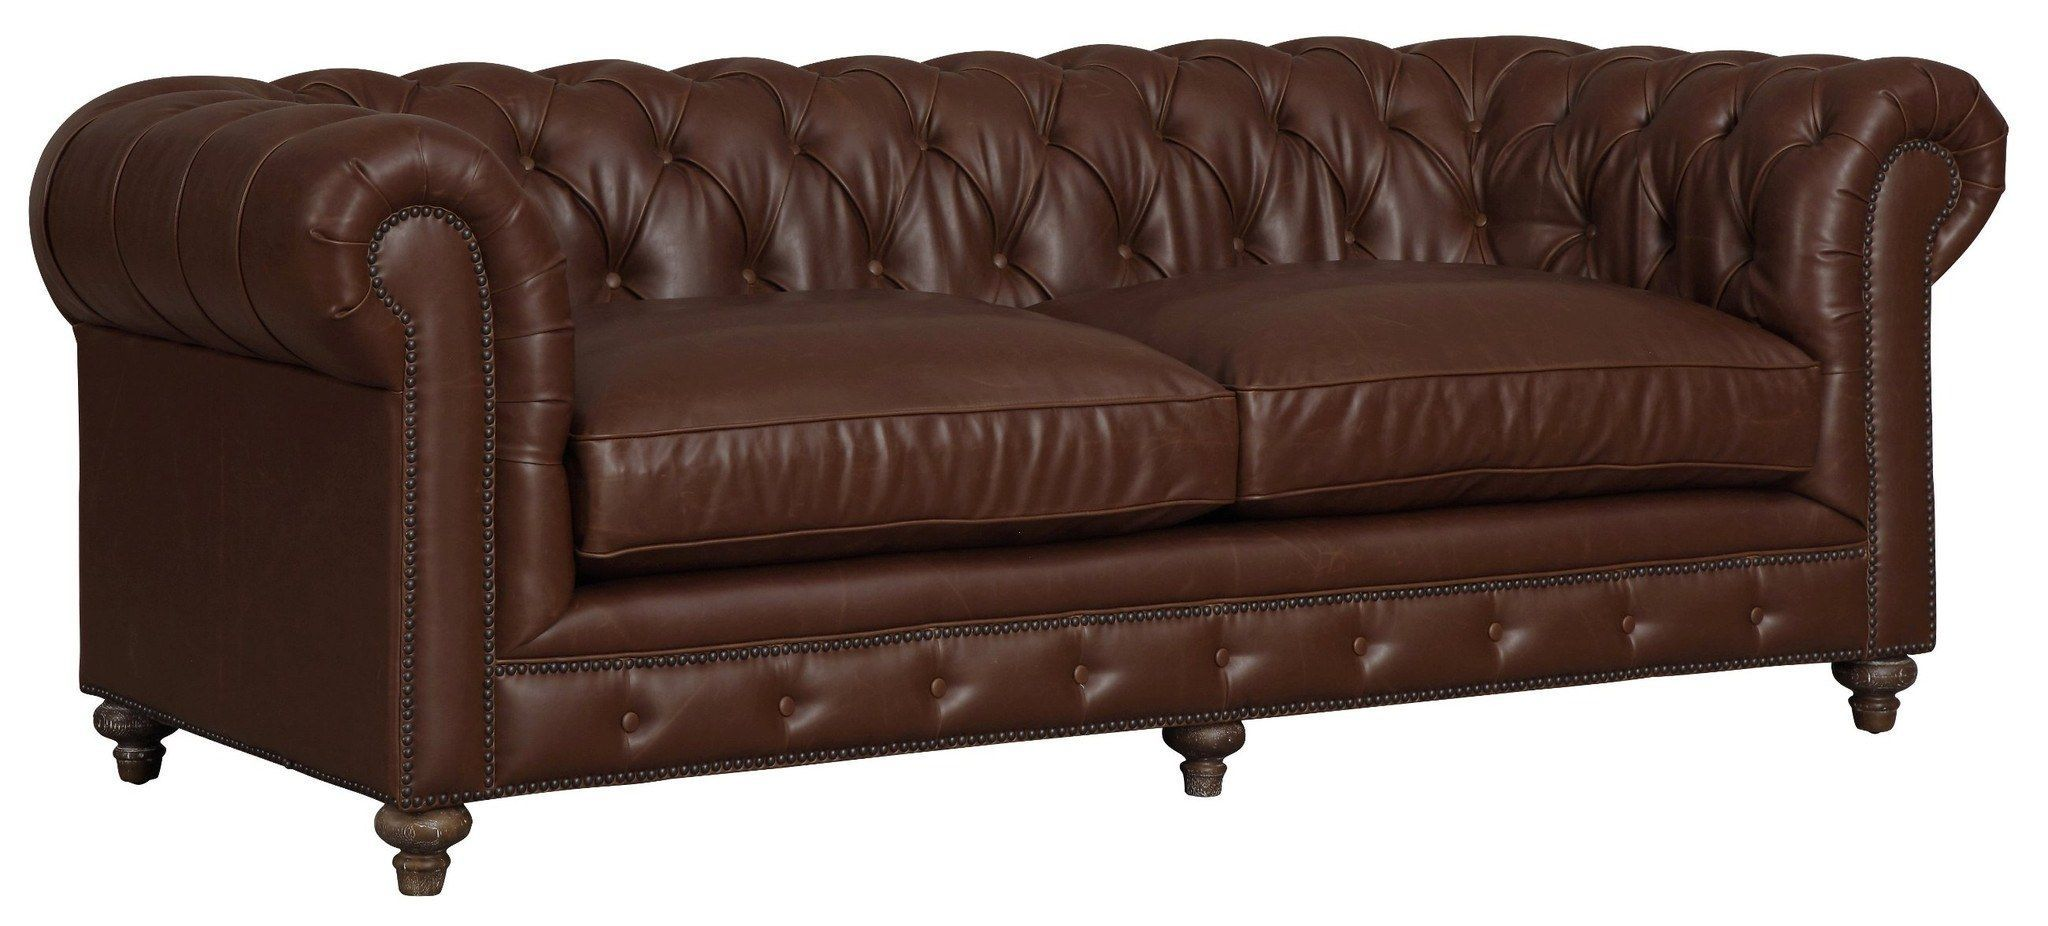 leather sofa deals free shipping plush sofas fortitude valley qld offers durango antique in blue